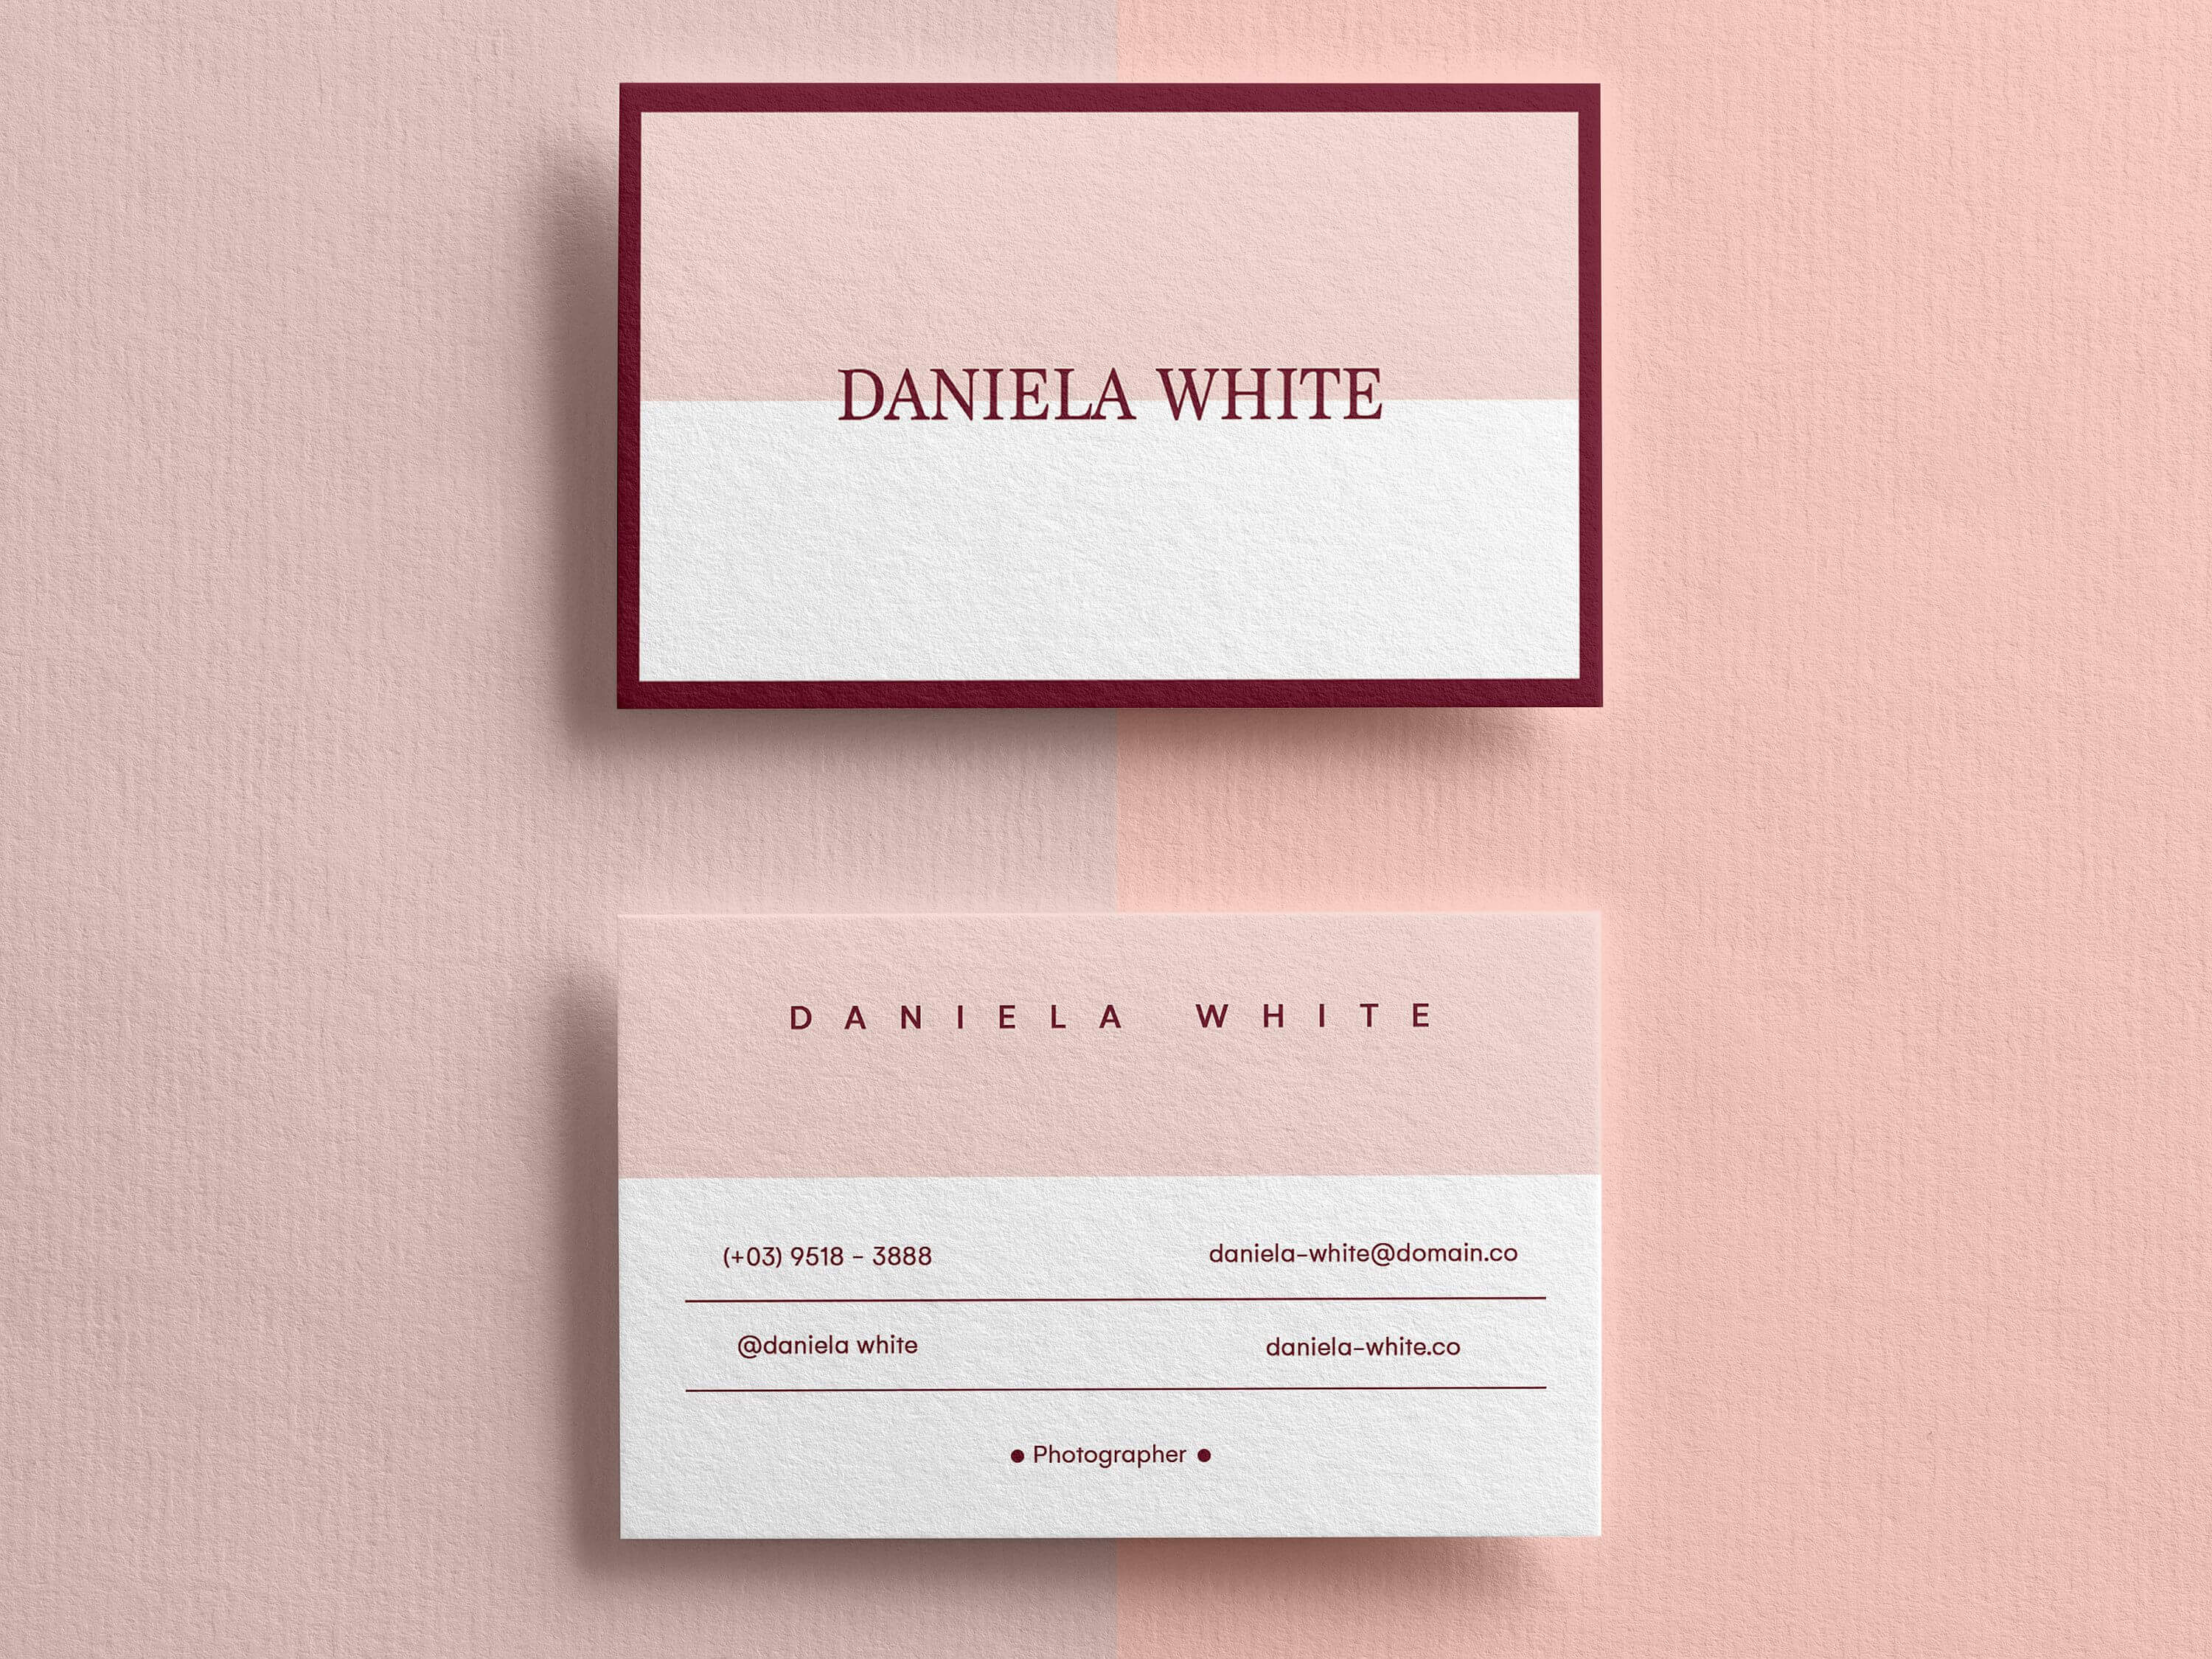 Minimalist Business Card, Modern Business Cards, Business In Template For Calling Card